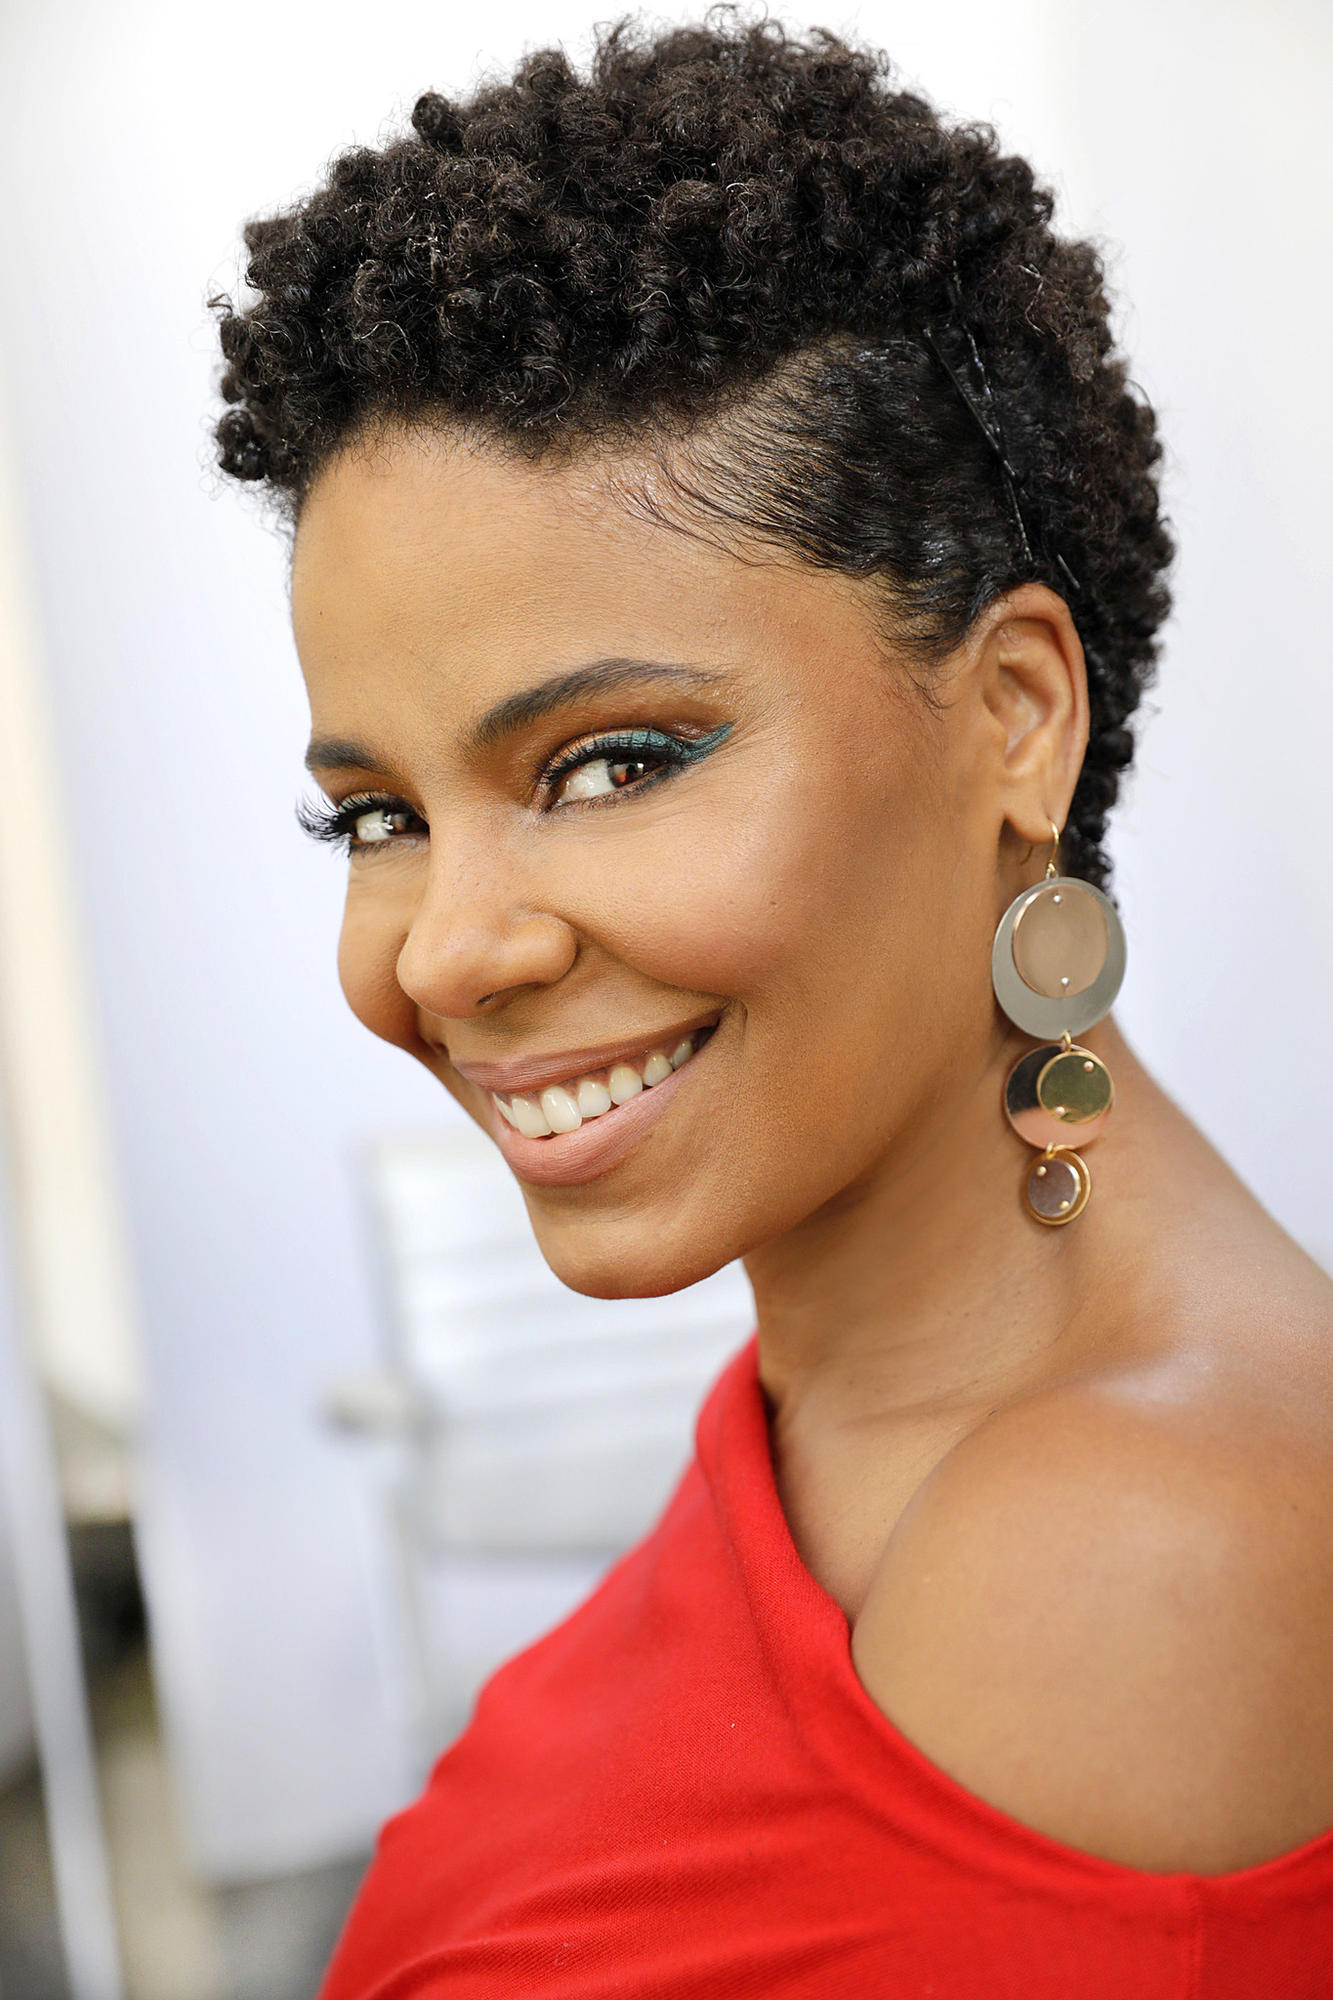 LOS ANGELES, CA., SEPTEMBER 10, 2018 — Sanaaa Lathan stars is in Nappily Ever After a movie about h